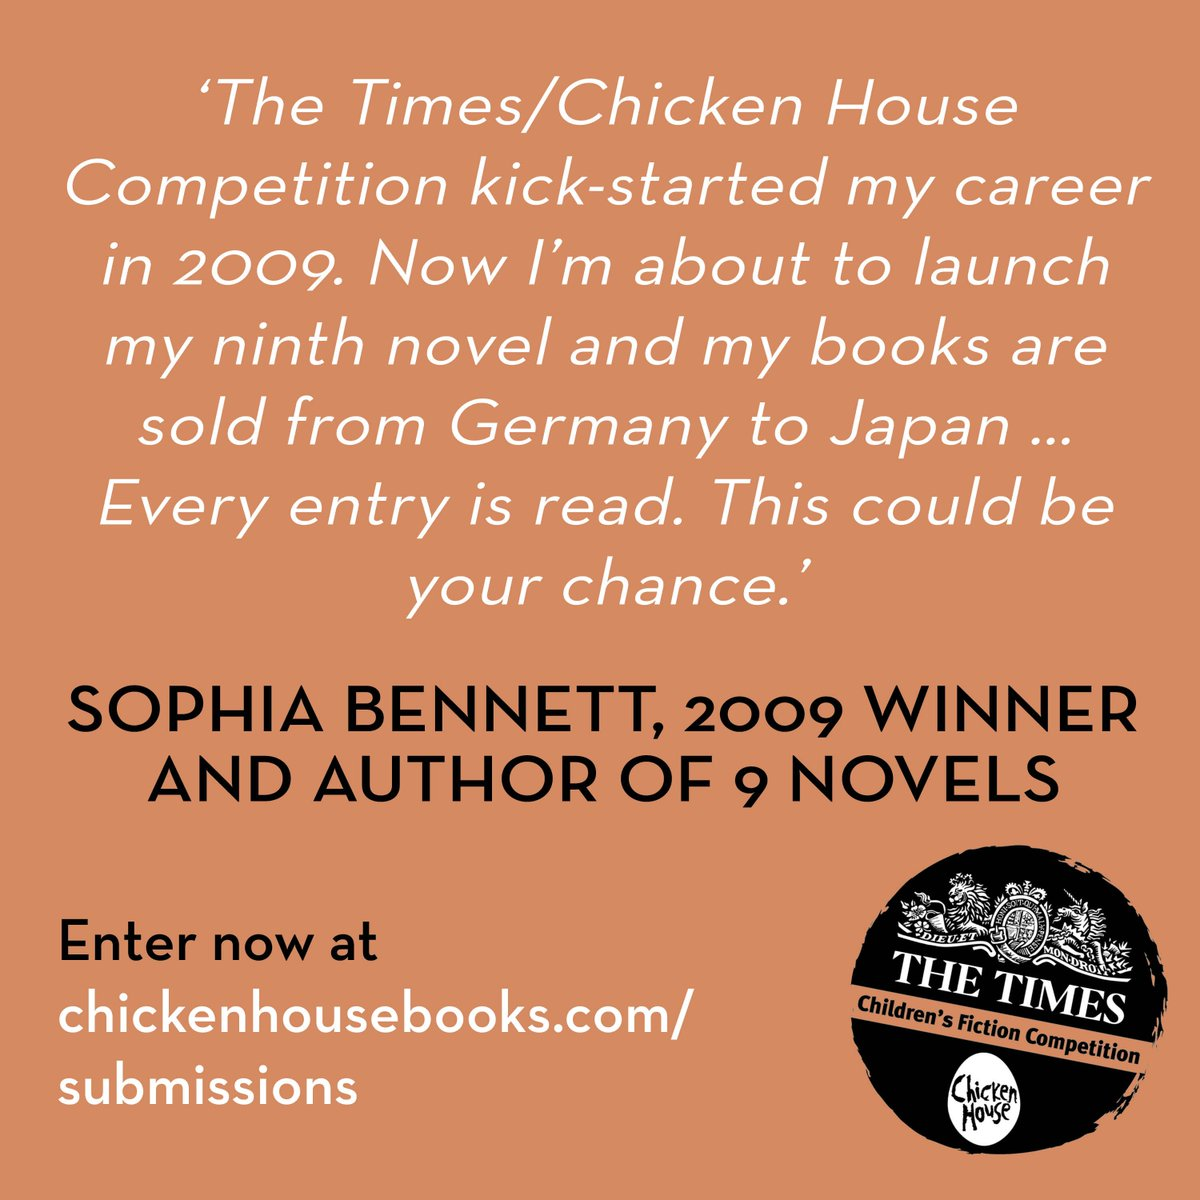 What to submit to the chicken